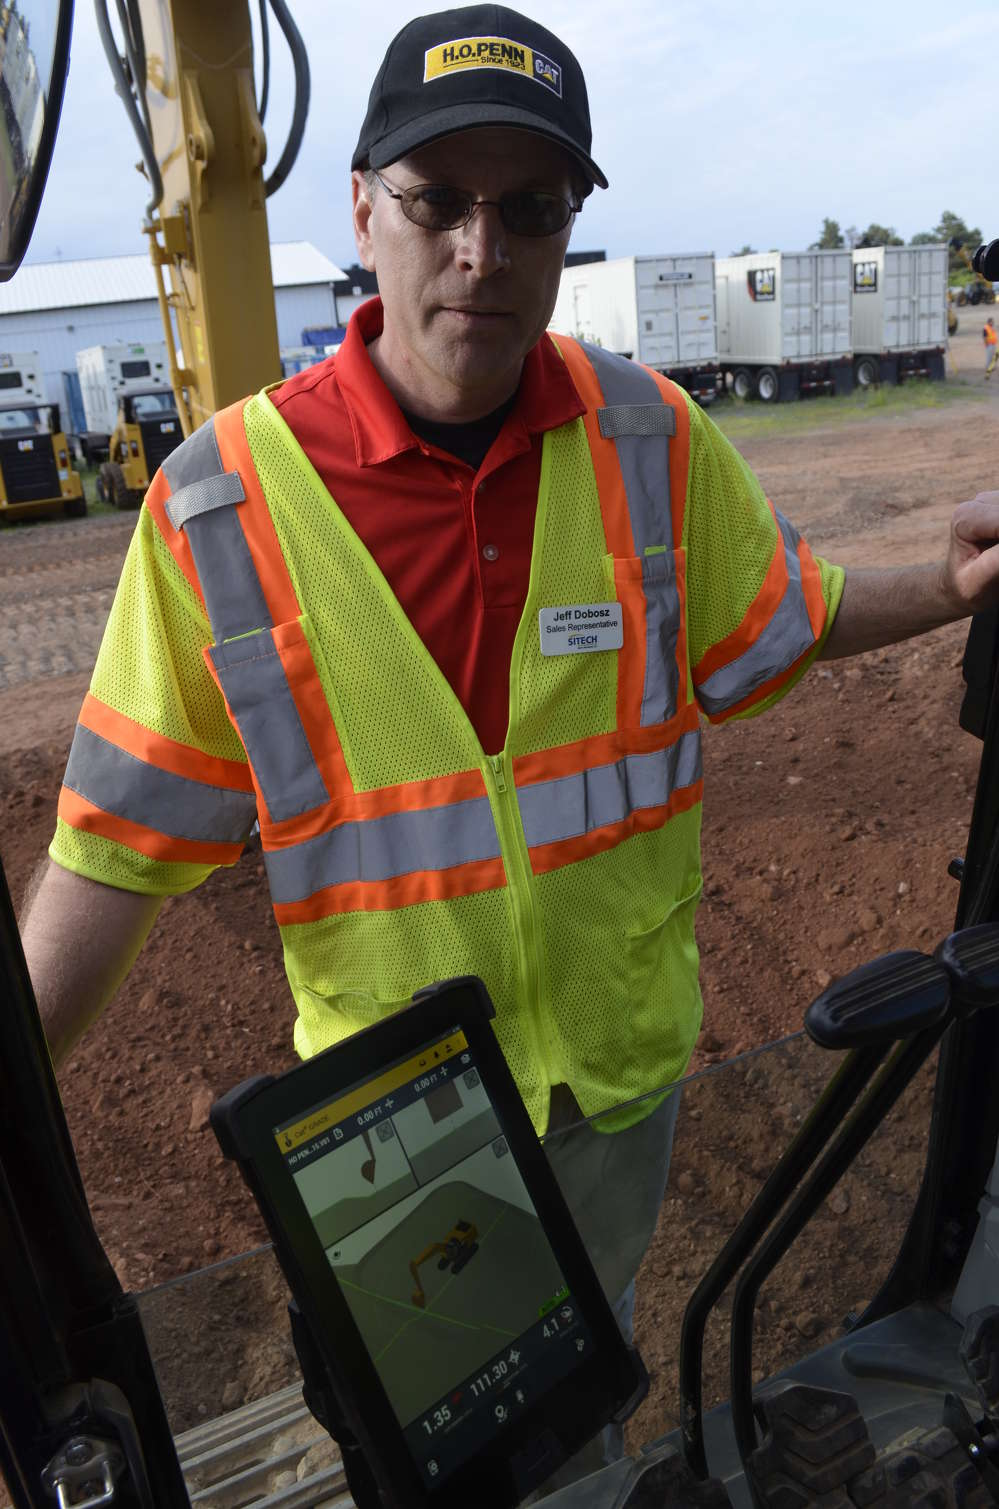 Jeff Dobosz of SITECH Metro Northeast explains Trimble Earthworks, now available in Caterpillar excavators. The Earthworks display provides operators with an extraordinarily detailed view of exactly where they are digging and how it relates to each project's design.